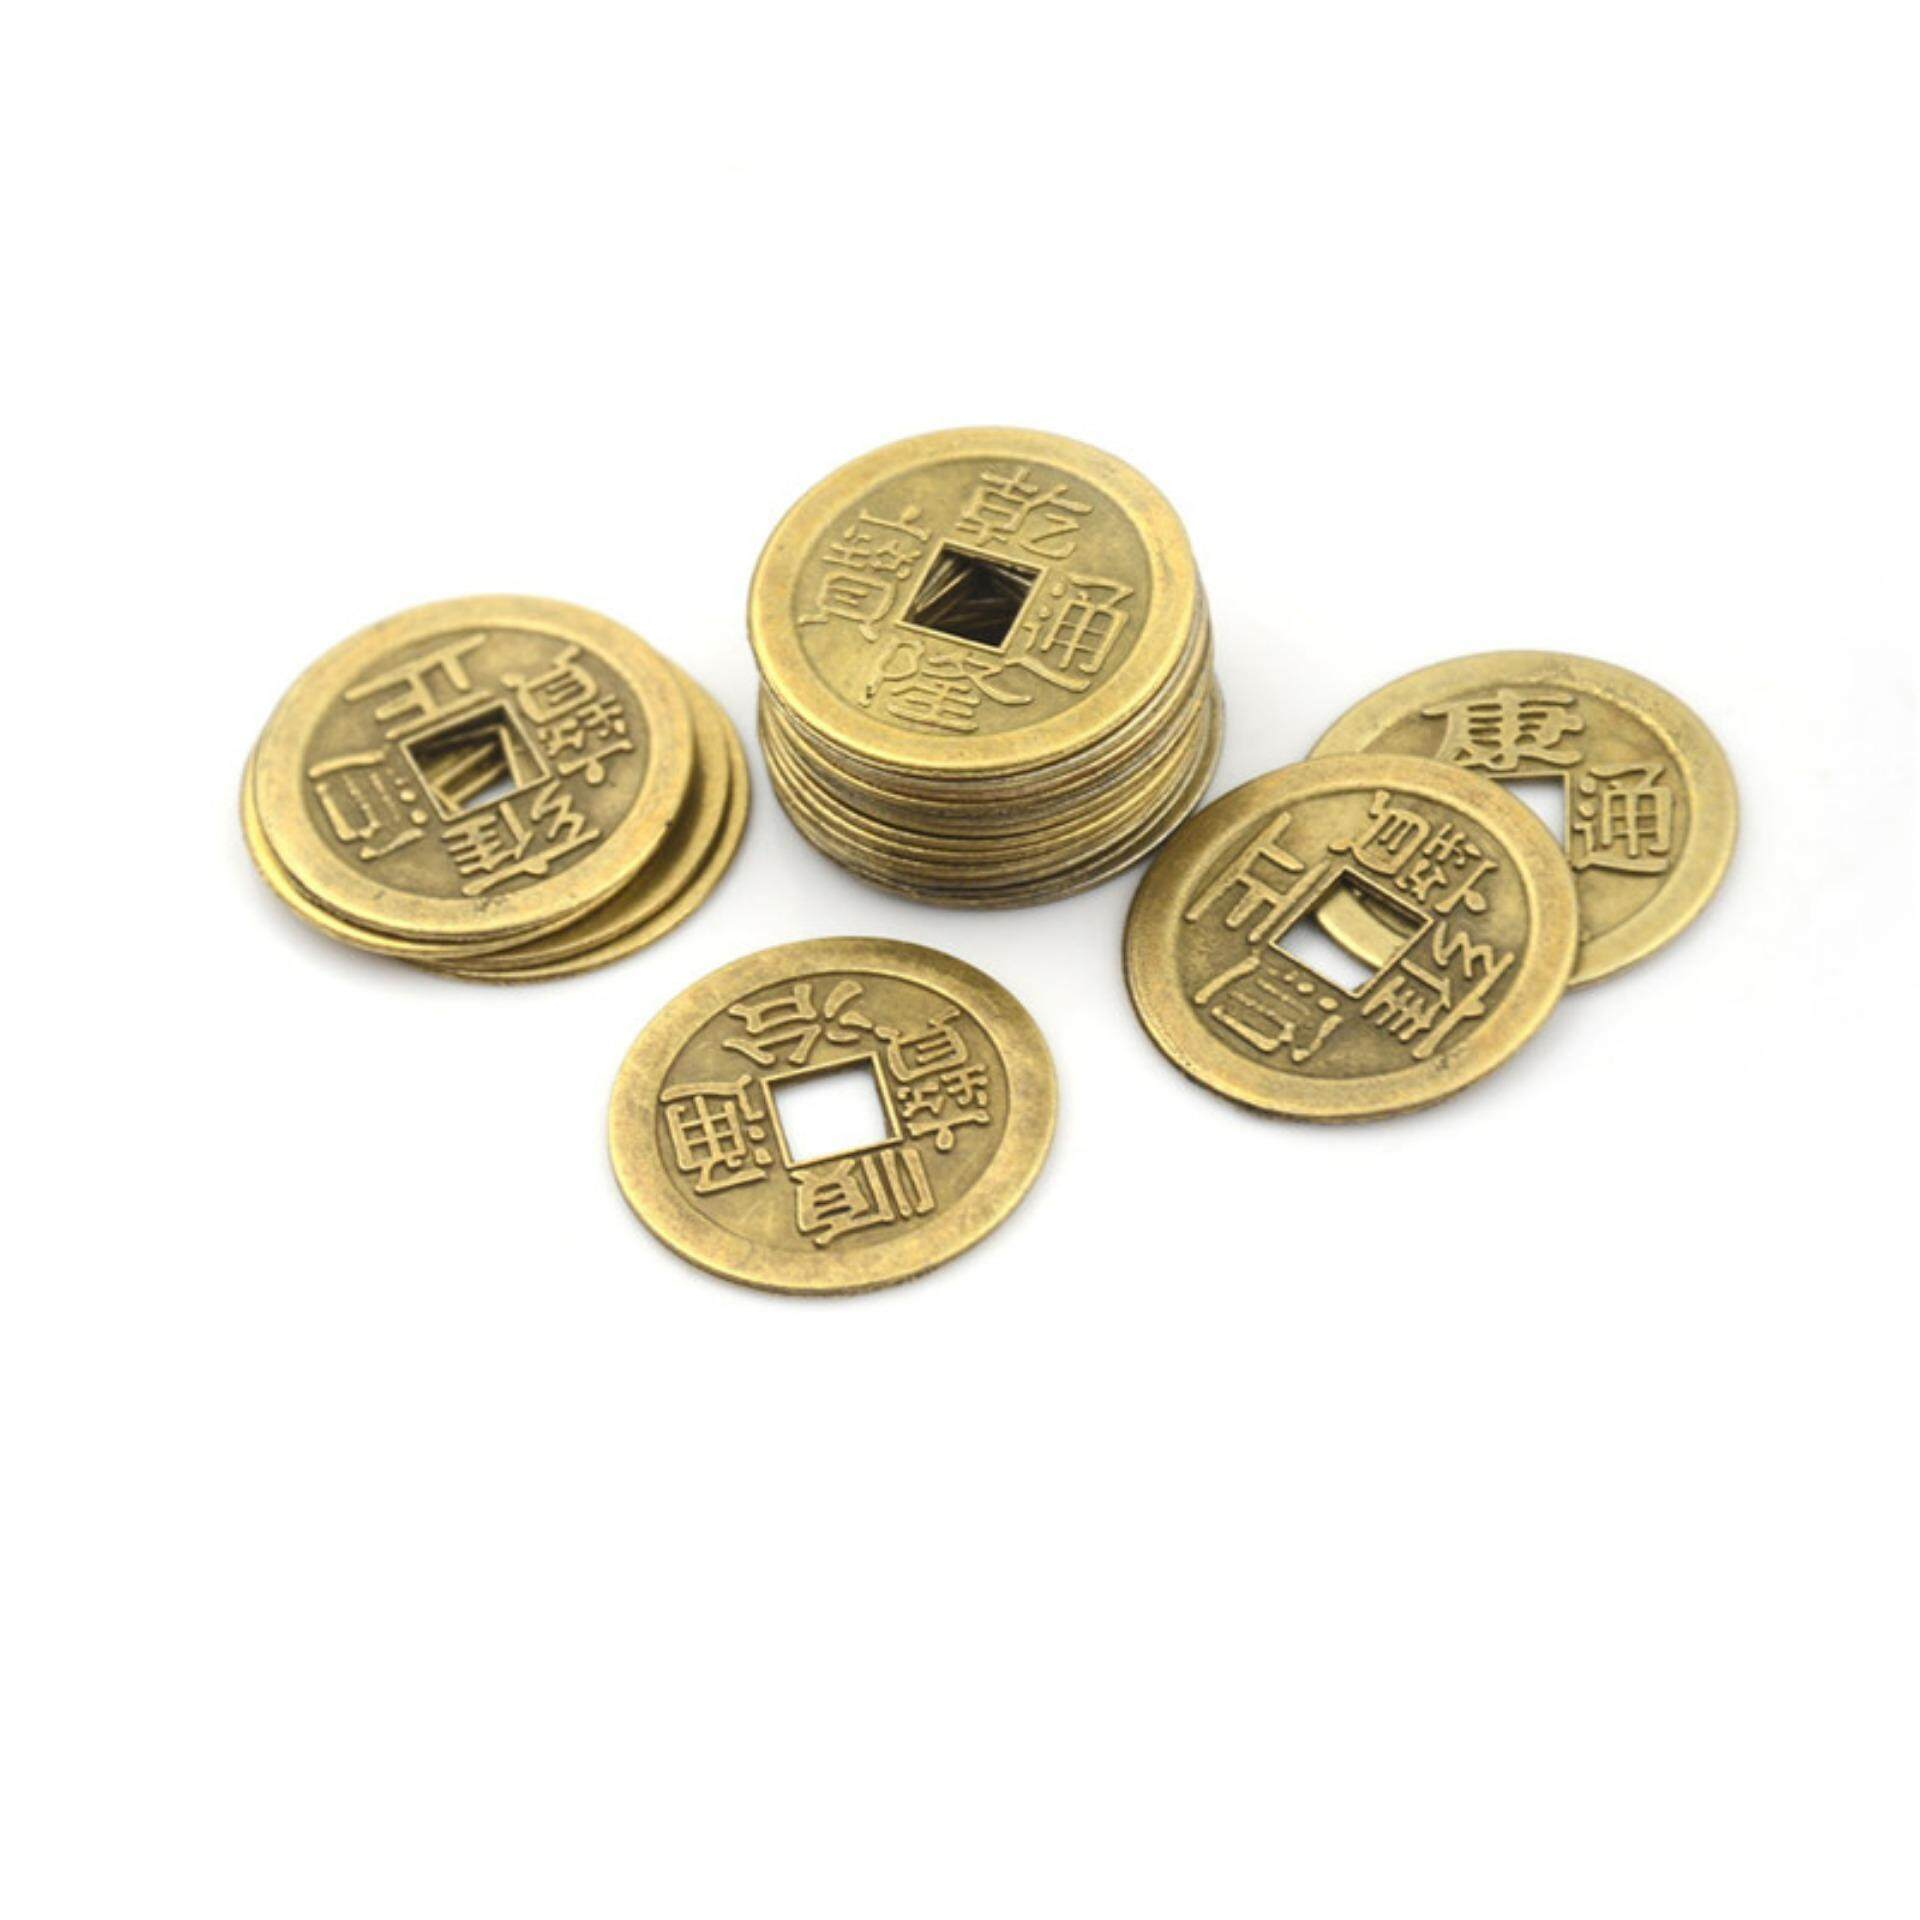 20pcs Feng Shui Coins 2 3cm Lucky Chinese Fortune Coin I Ching Money Alloy